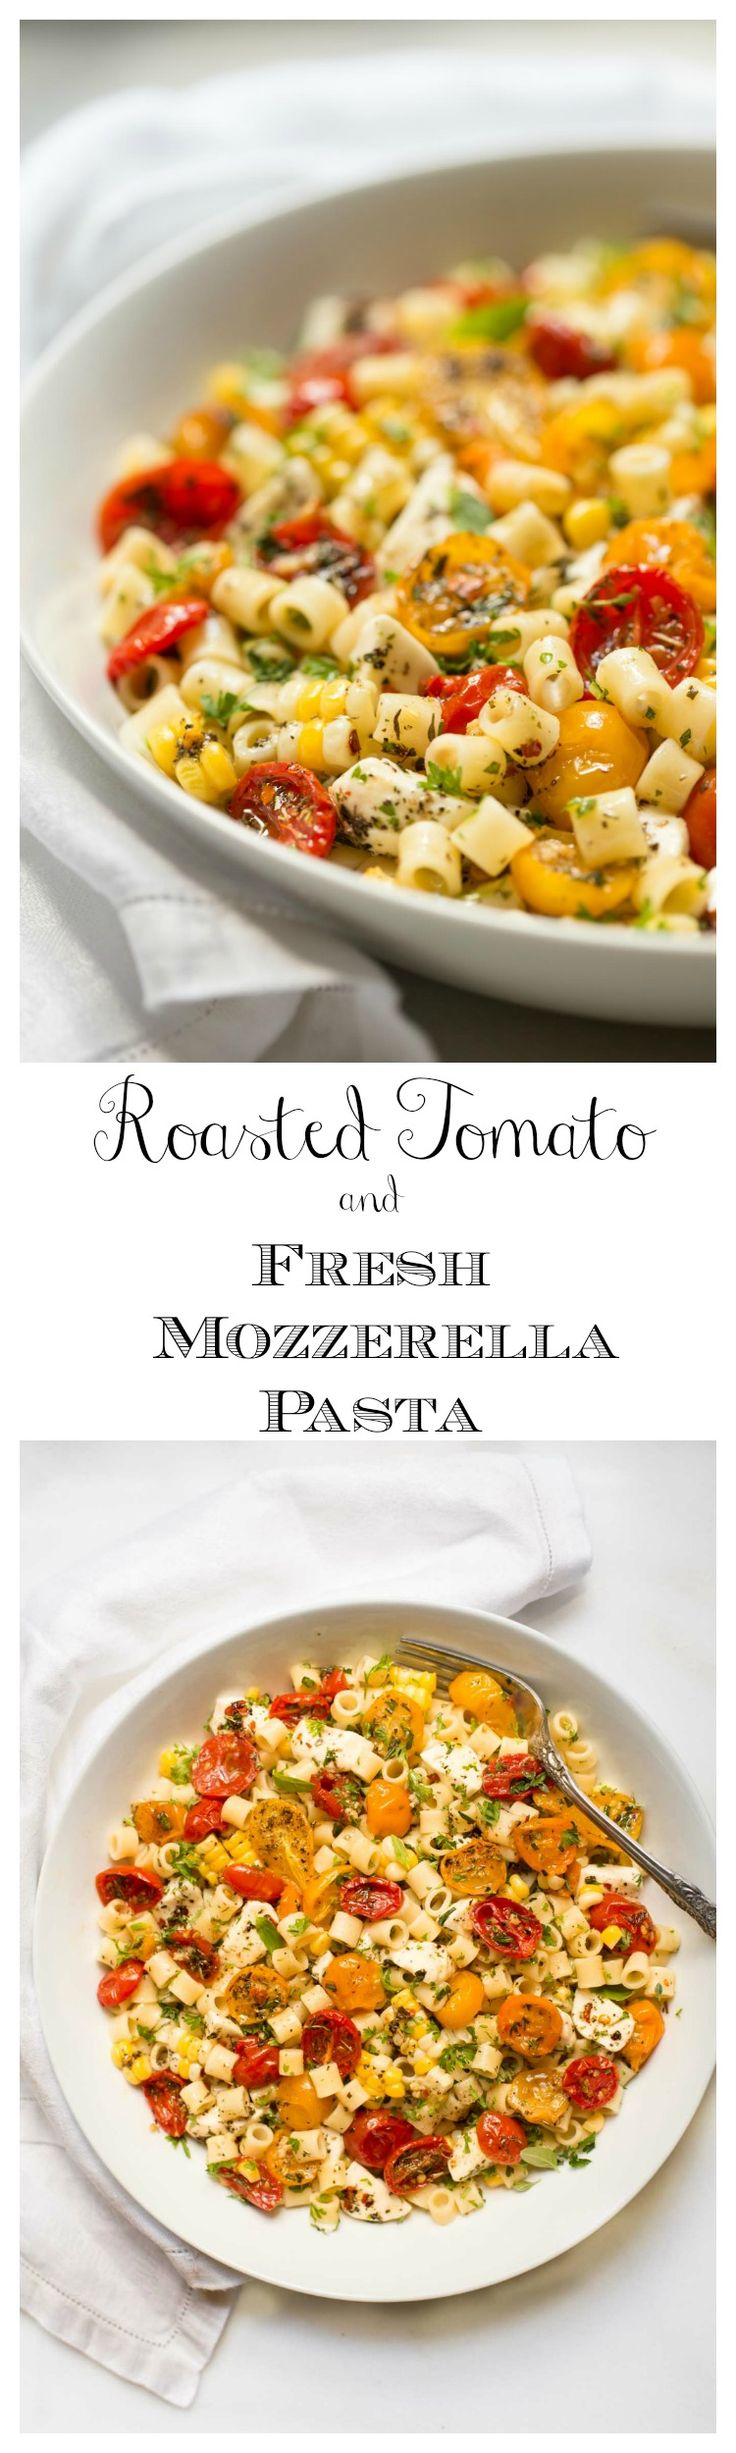 """Roasted Tomato and Fresh Mozzarella Pasta - if this delicious pasta could talk it would be shouting """"summer""""!"""